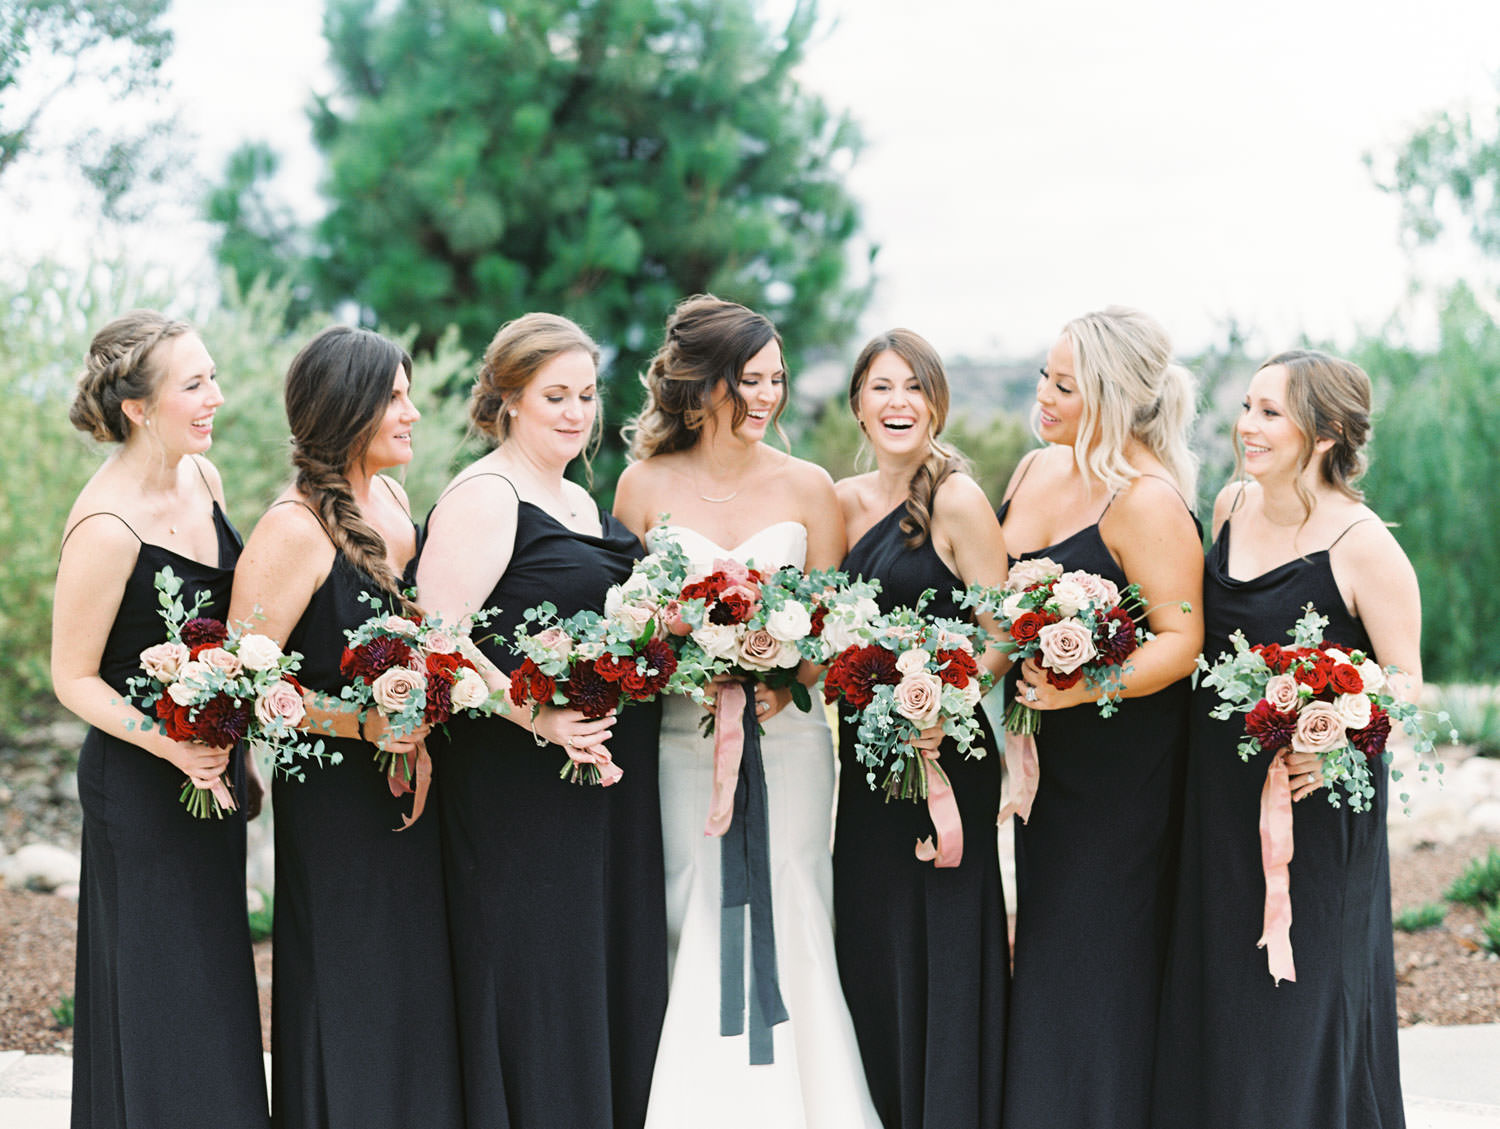 Bride in Anne Barge sweetheart gown with red ivory and mauve bouquet and bridesmaids in black dresses at Green Acre Campus Pointe Wedding, film photo by Cavin Elizabeth Photography